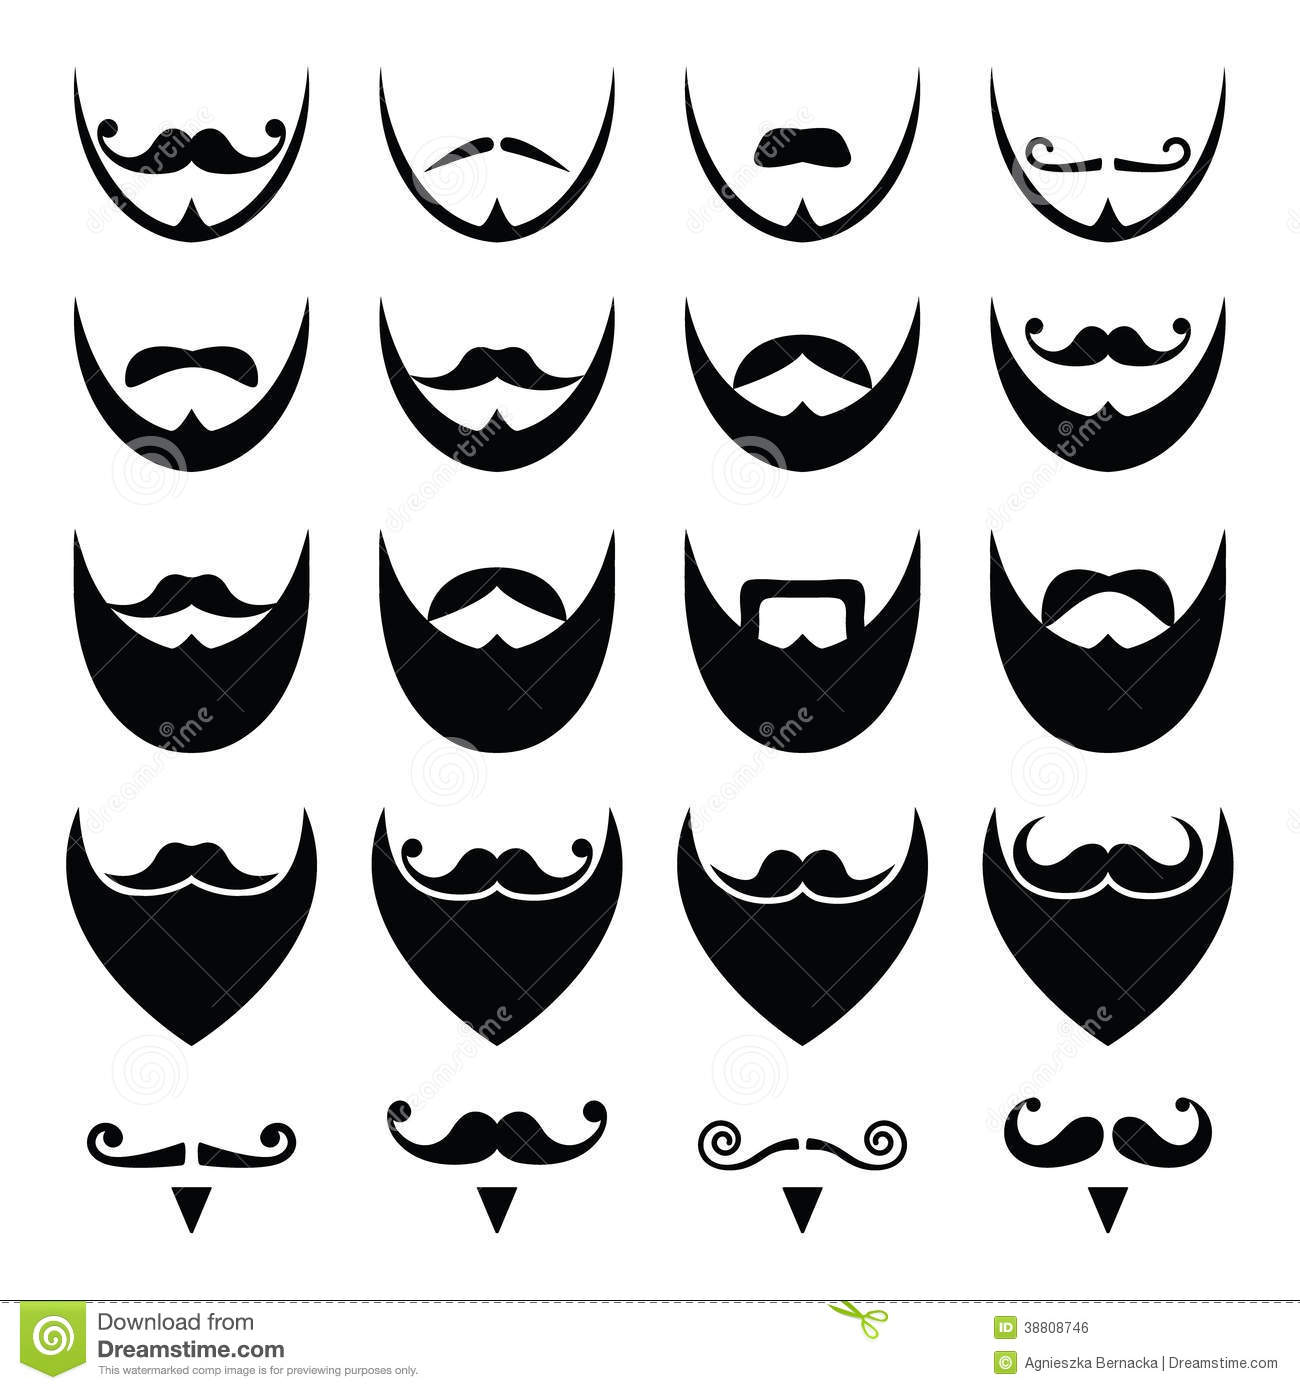 beard with moustache or mustache icons set stock illustration image 38808746. Black Bedroom Furniture Sets. Home Design Ideas